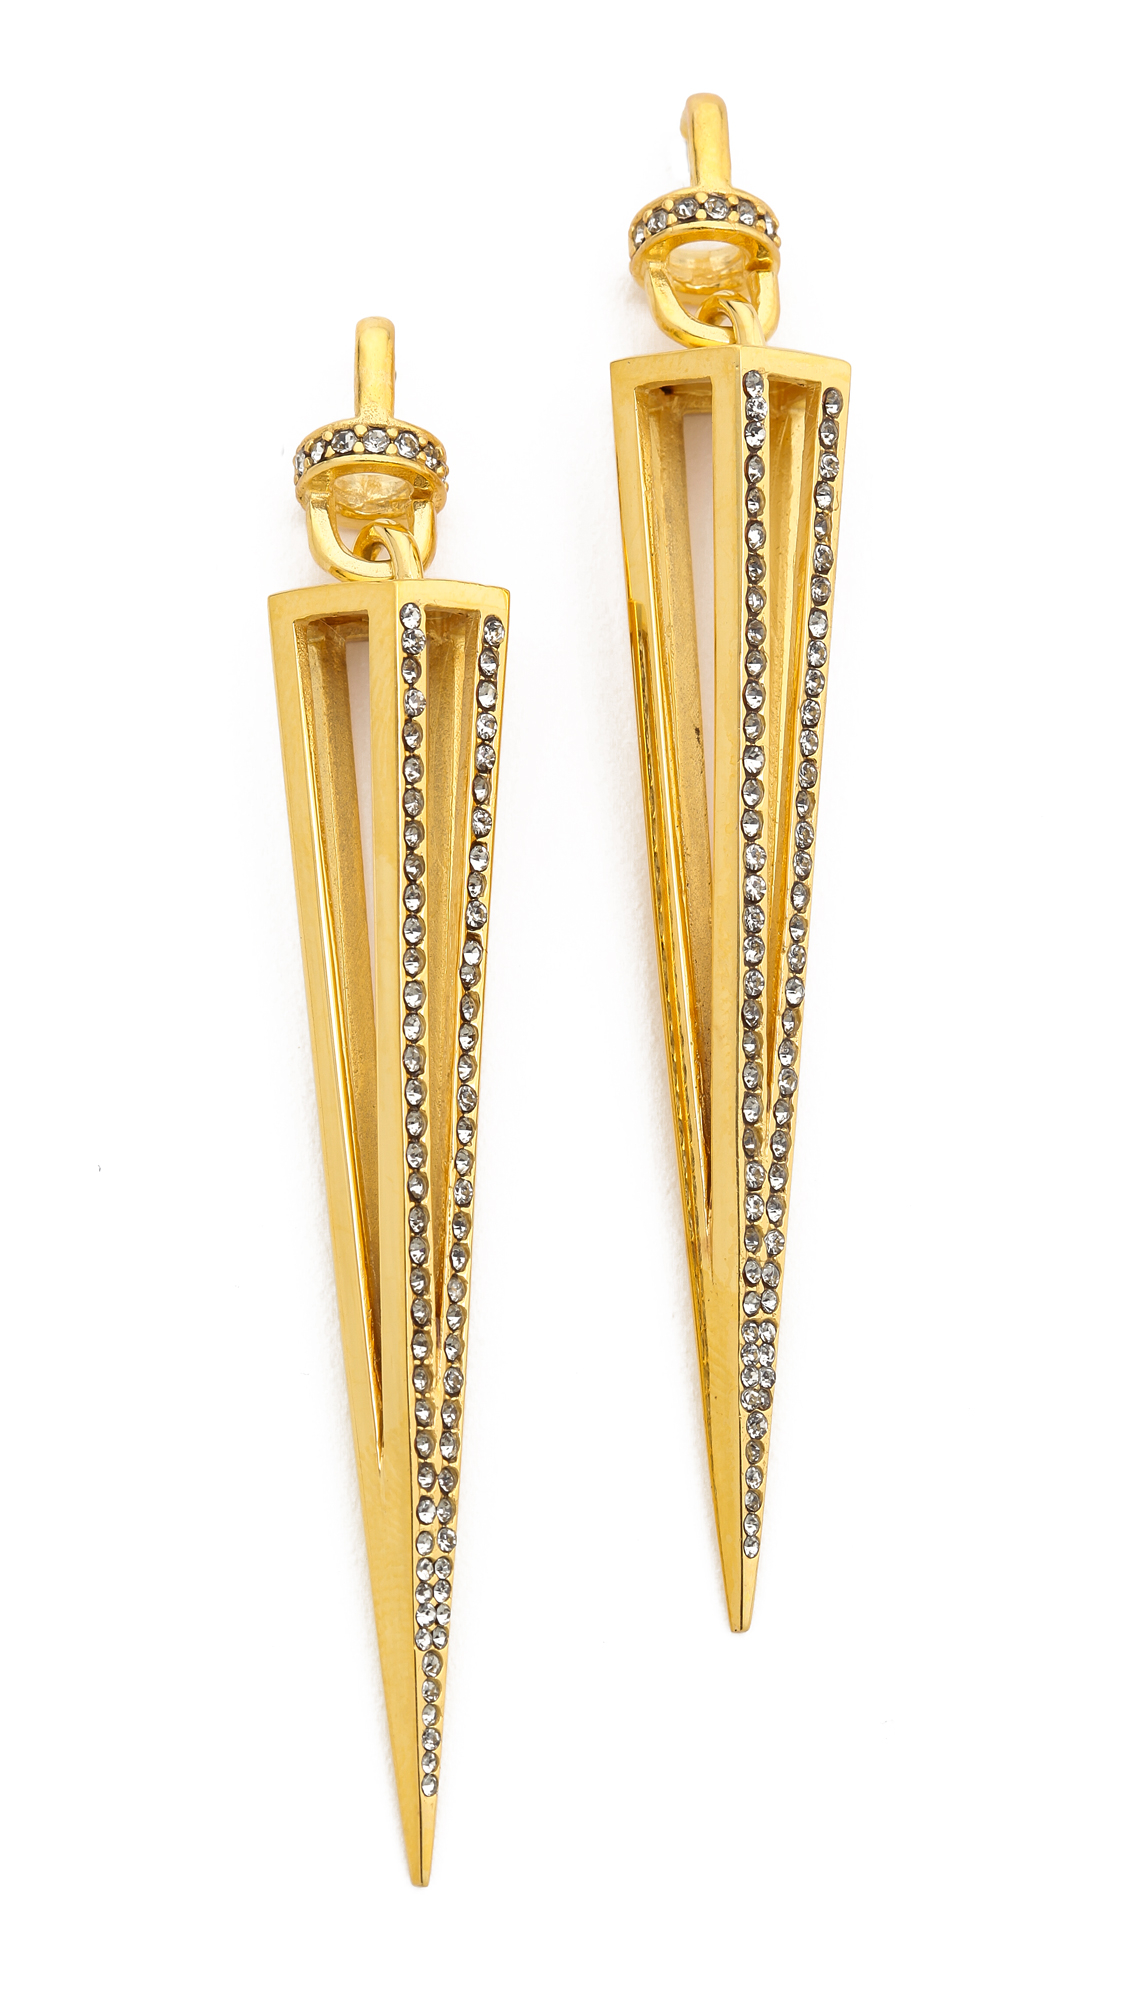 9763c7c11 Lyst - Paige Novick Claire Collection Caged Spike Earrings Shiny ...